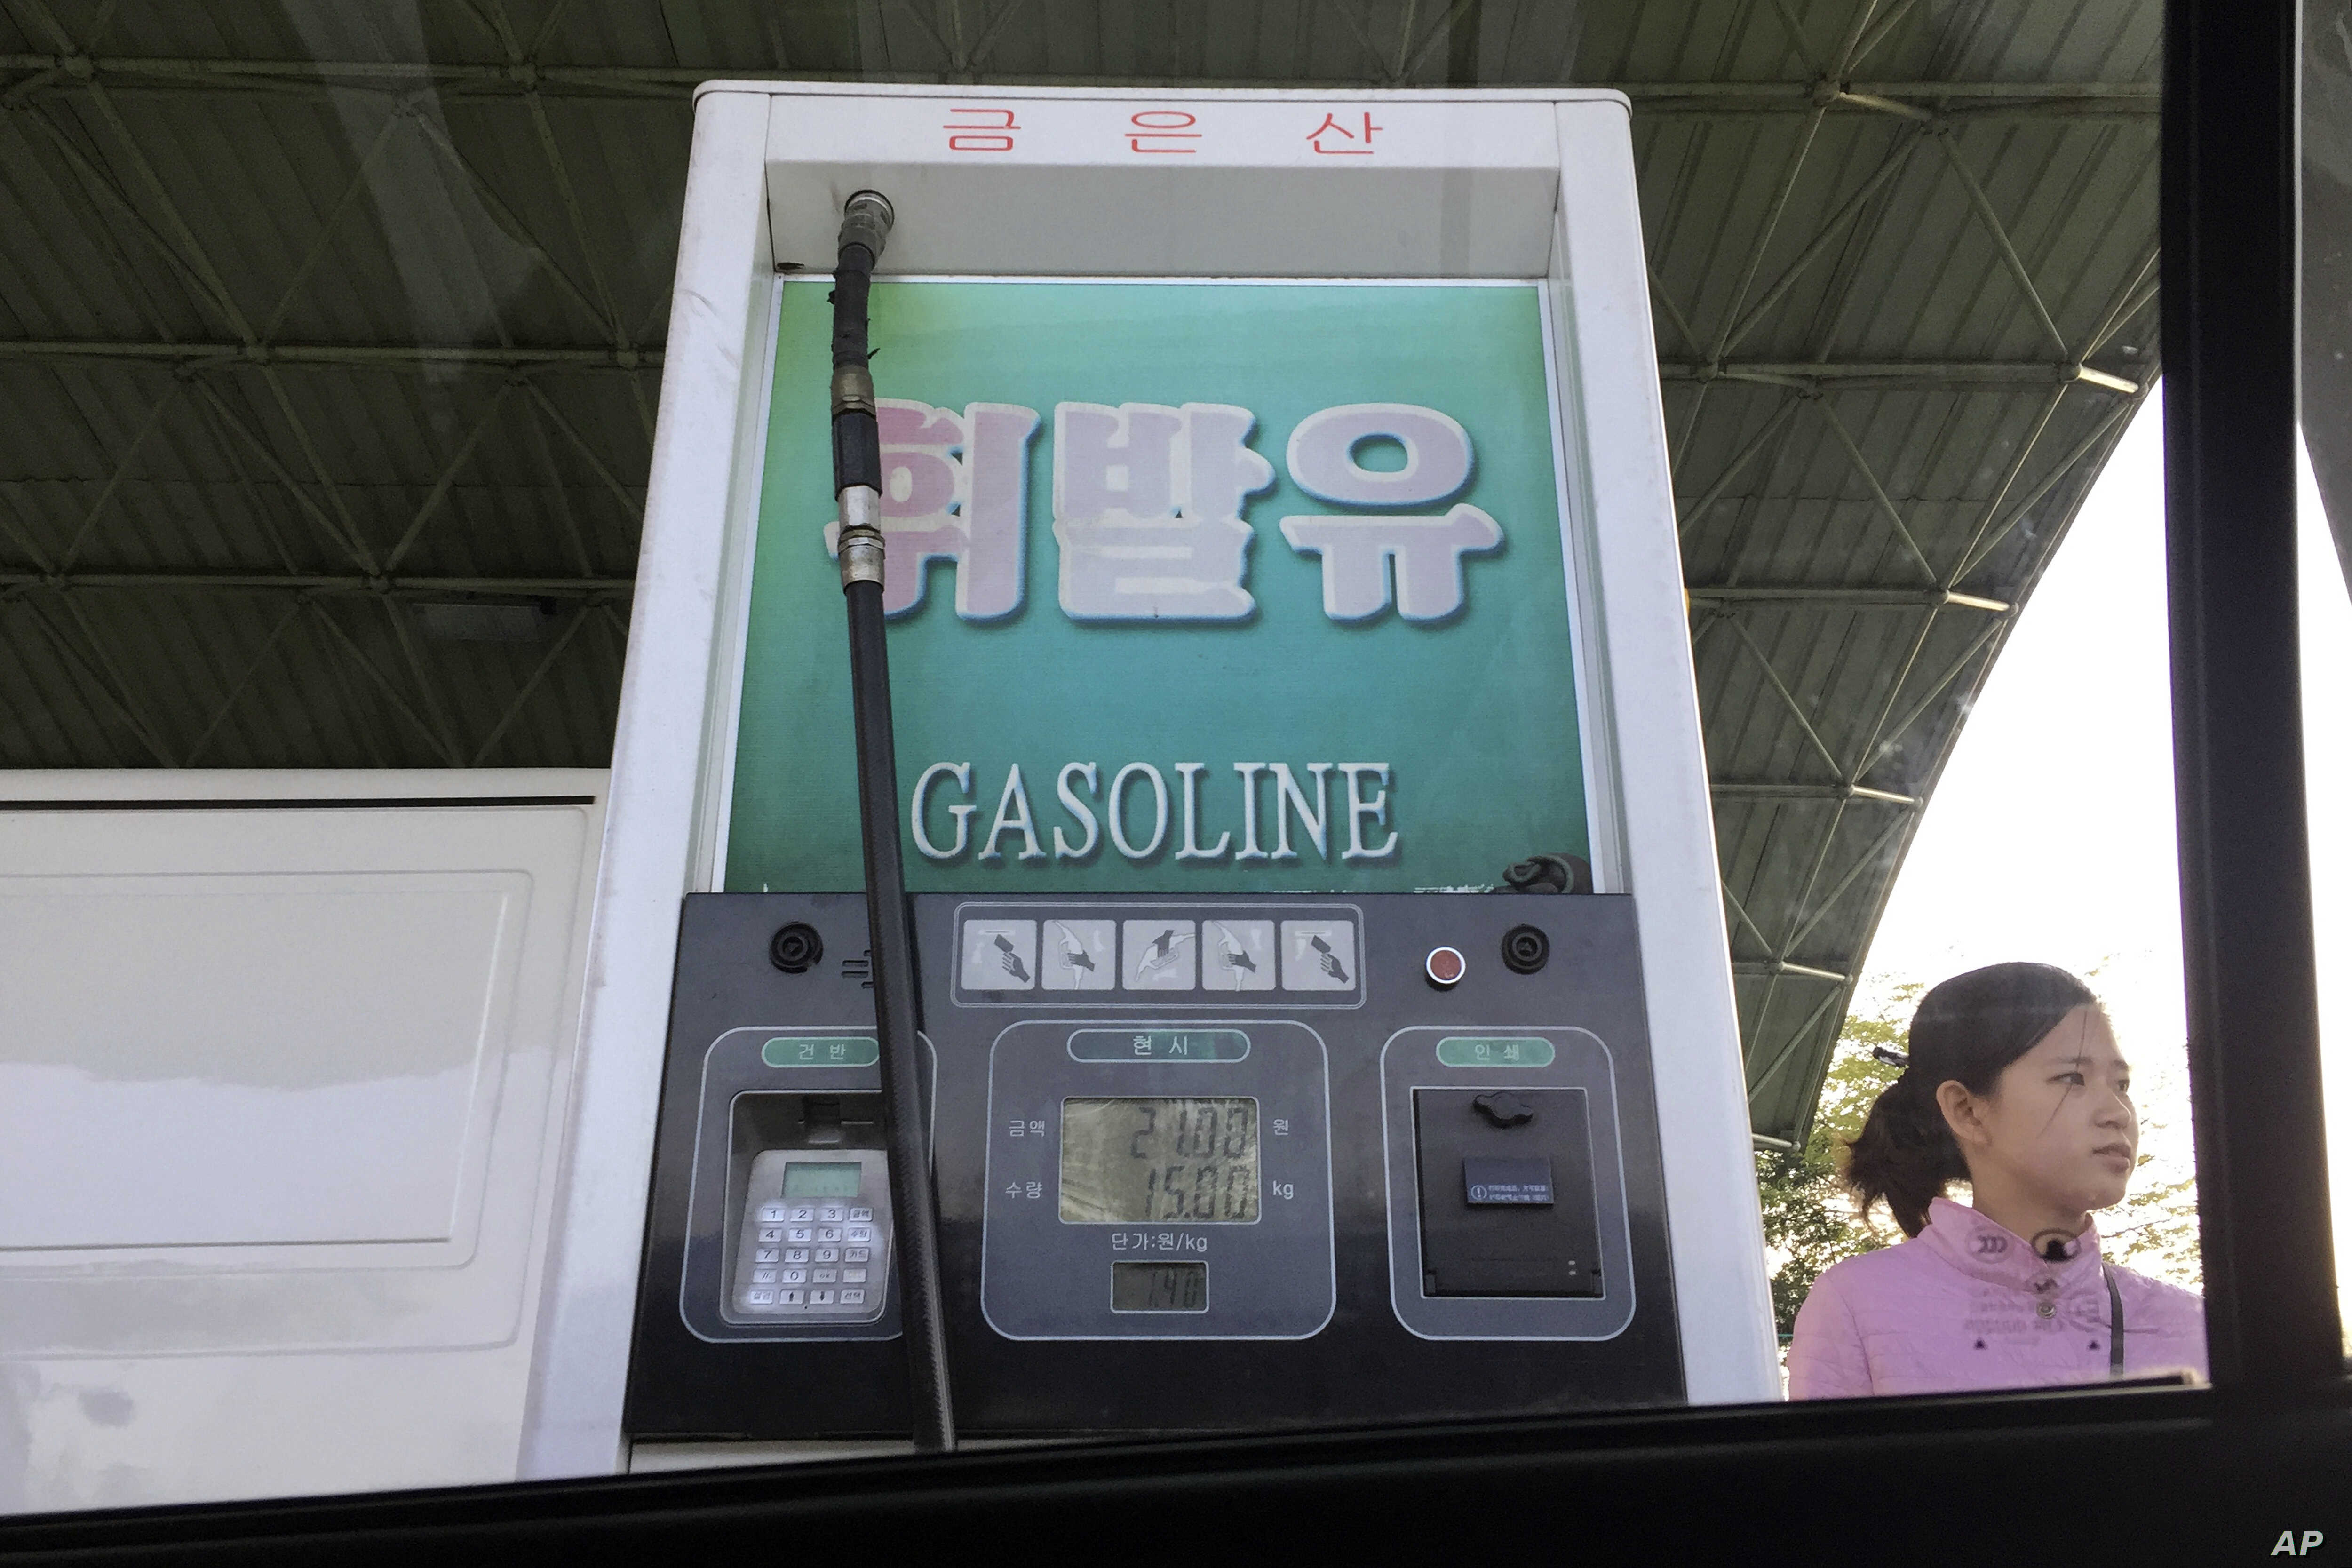 Gas Prices High, Going Higher in North Korea | Voice of America